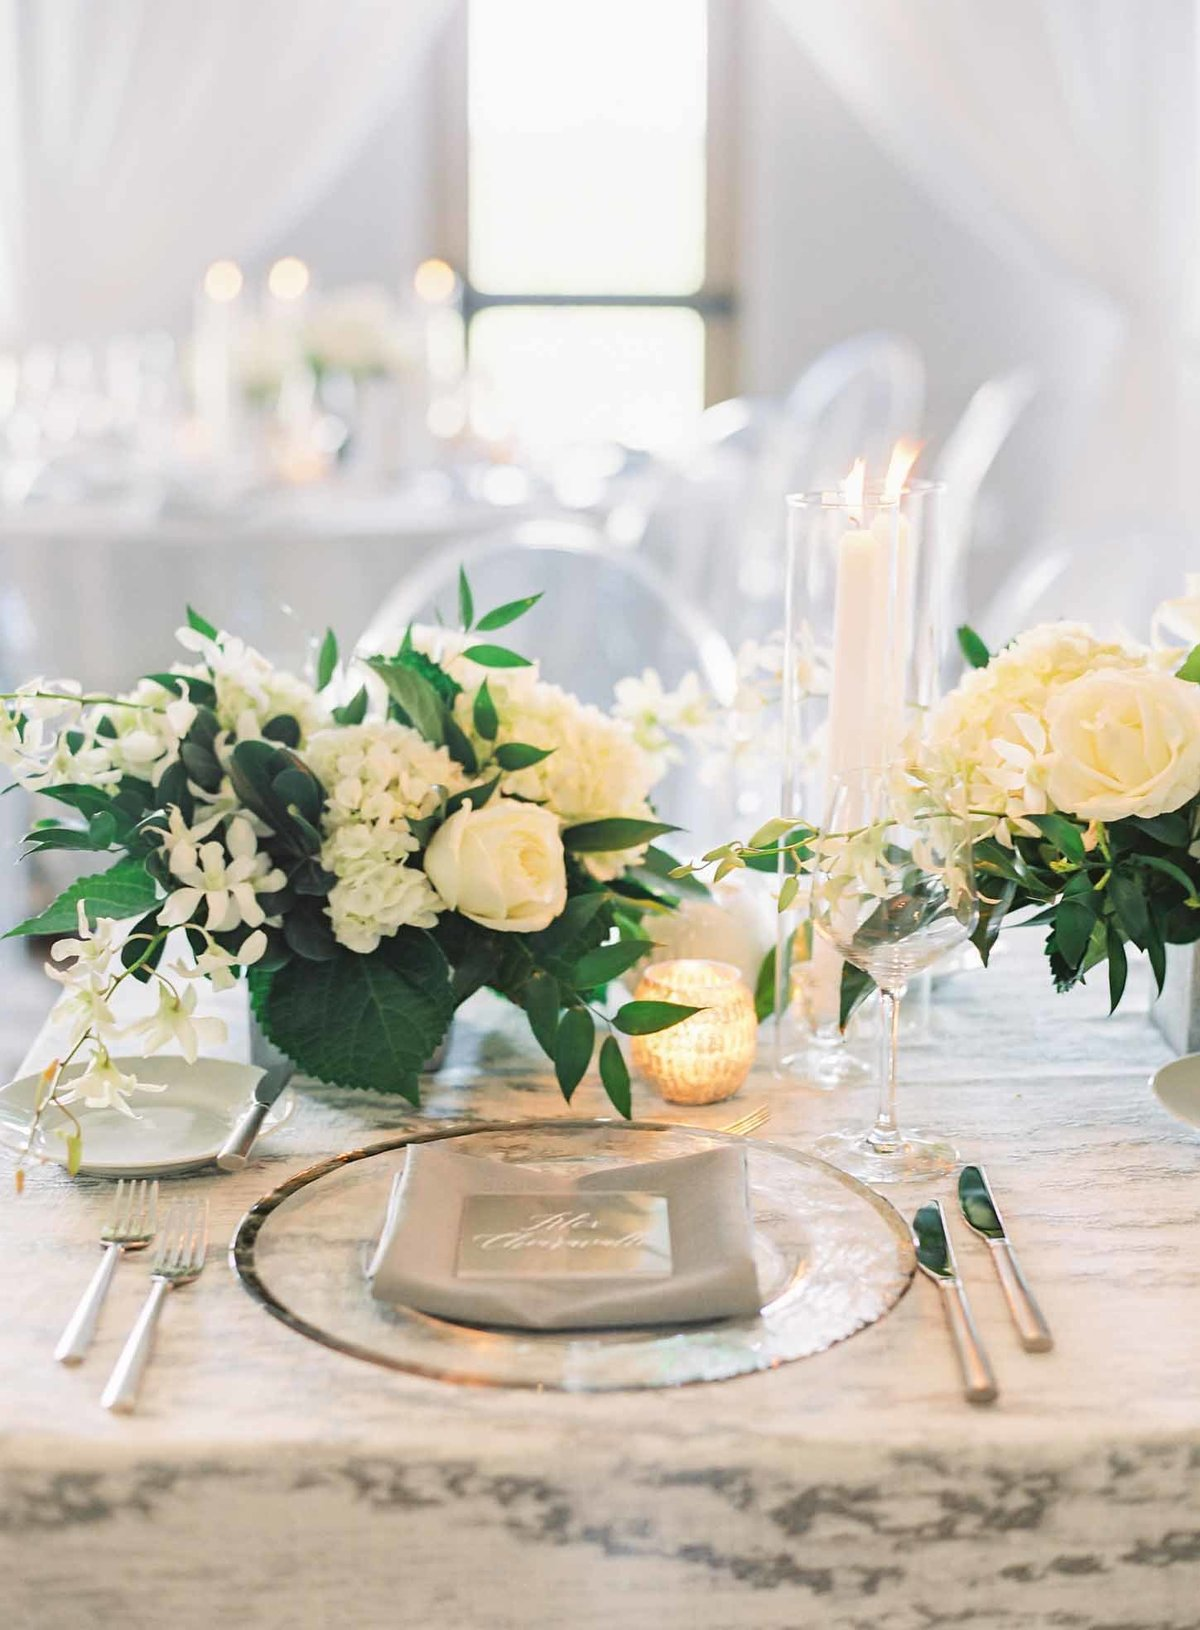 Grey marbled linens look stunning with these white and green floral arrangements with white orchids.